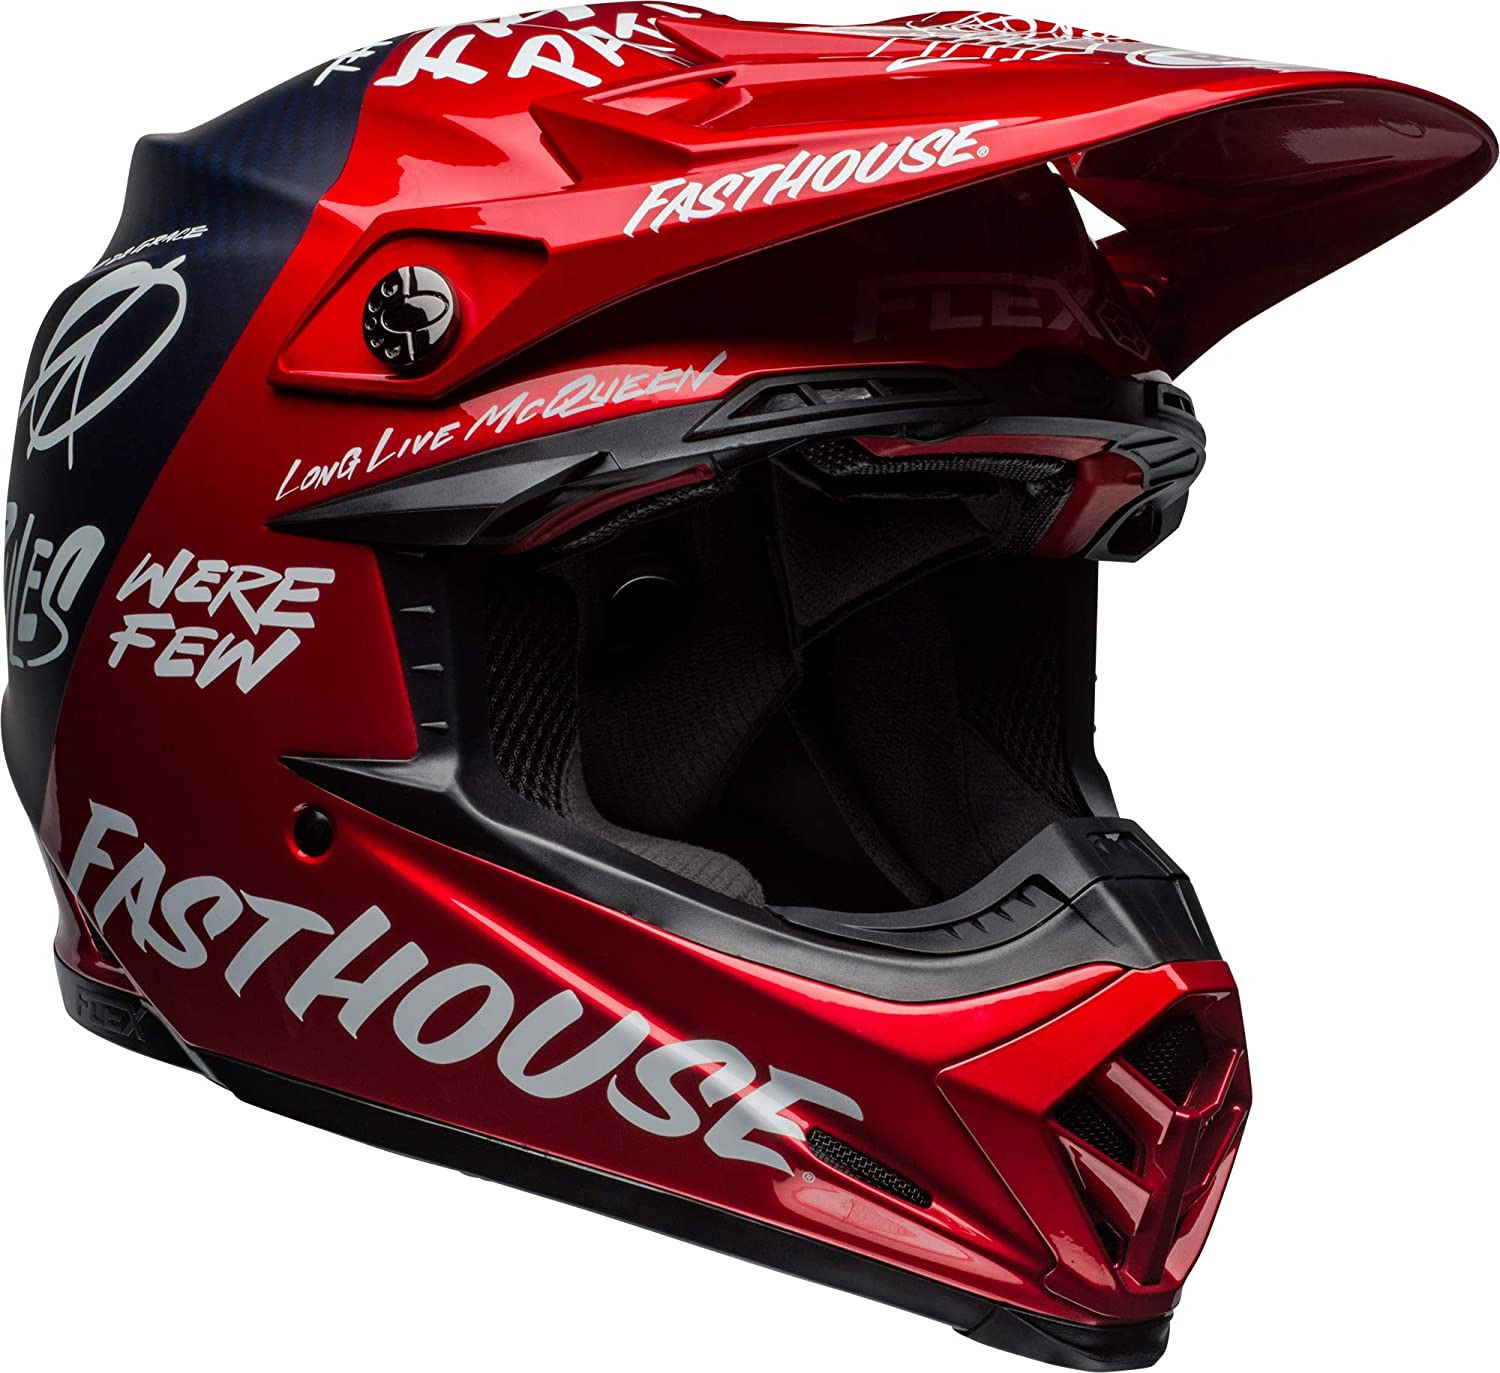 promo codes new style the best Bell Moto-9 Flex Off-Road Motorcycle Helmet (Fasthouse DITD Matte/Gloss Red  Navy, Medium)